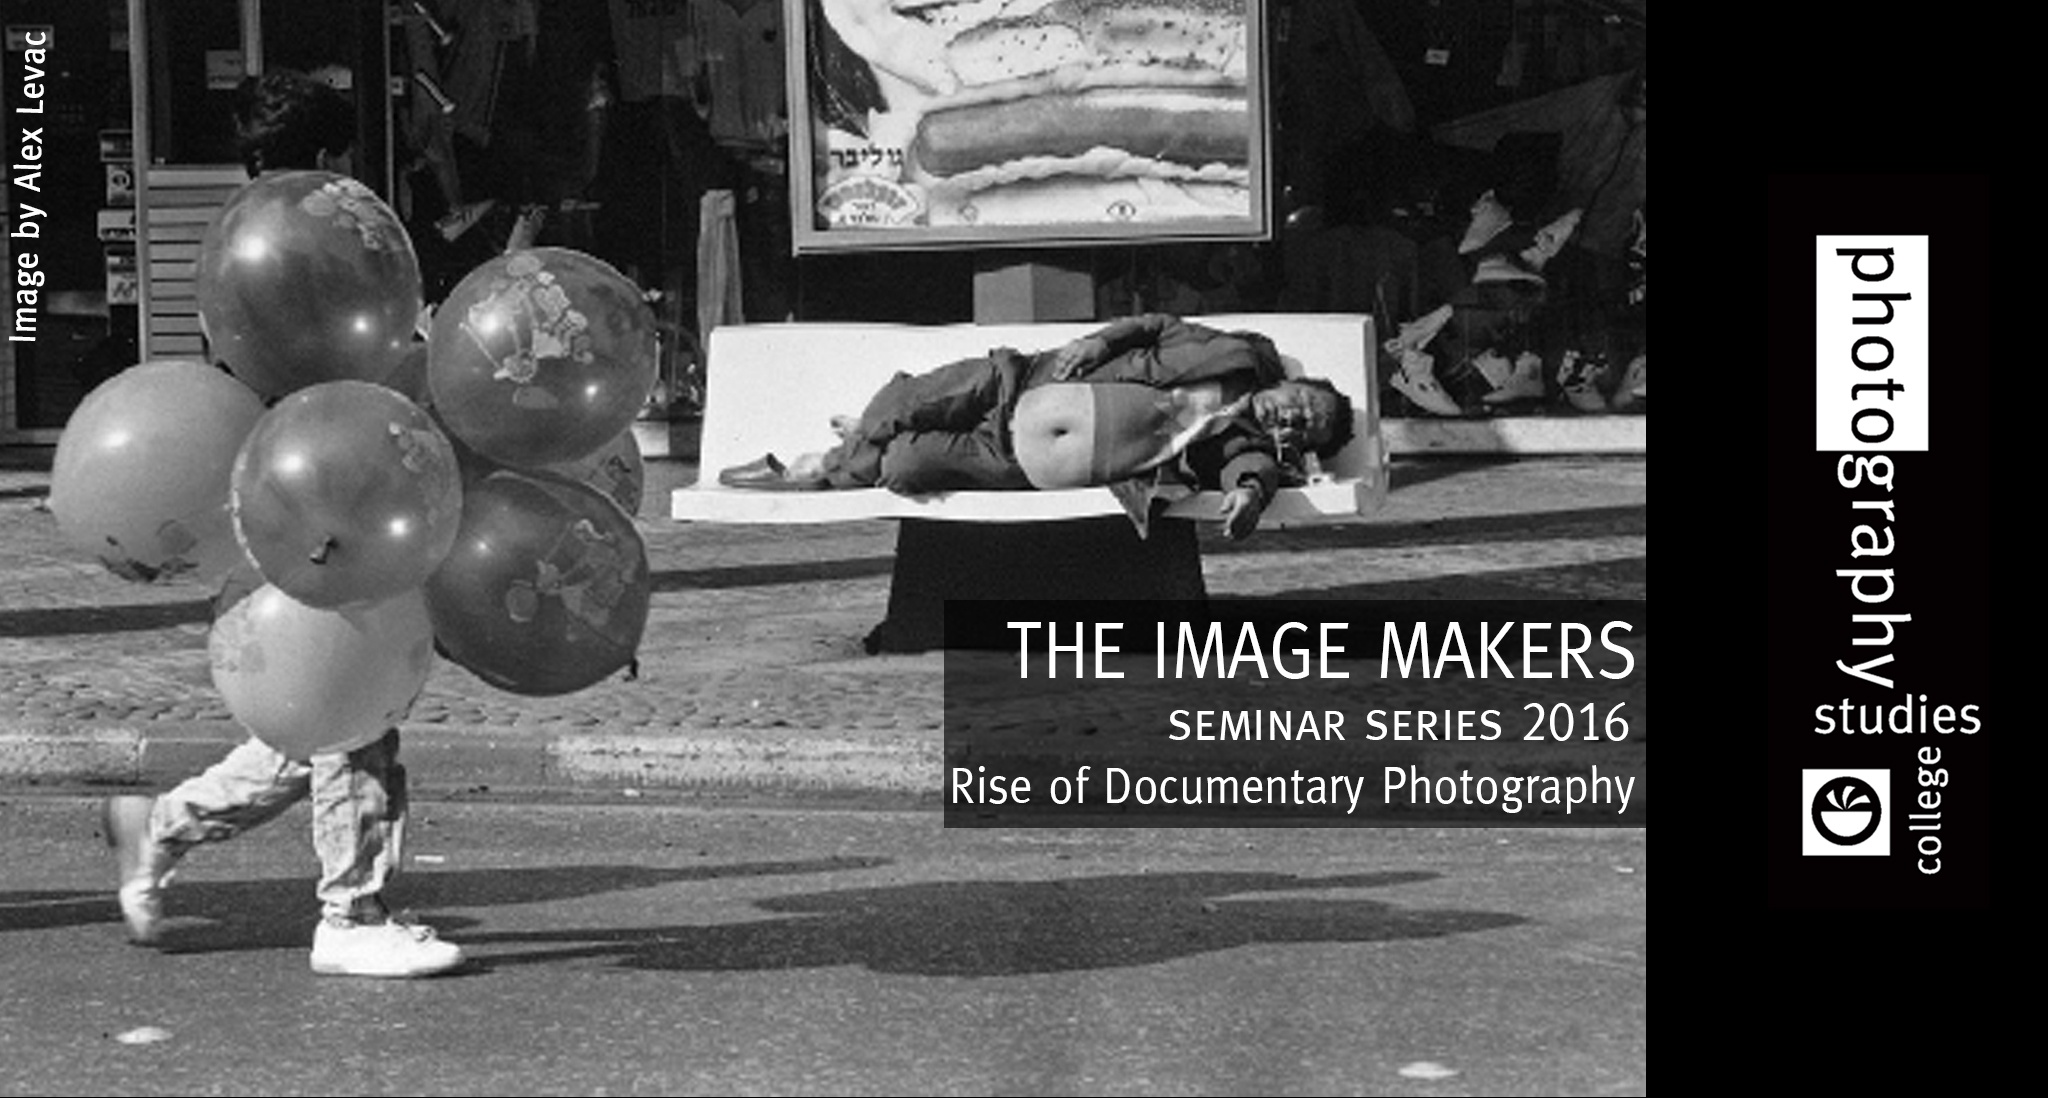 Rise of Documentary